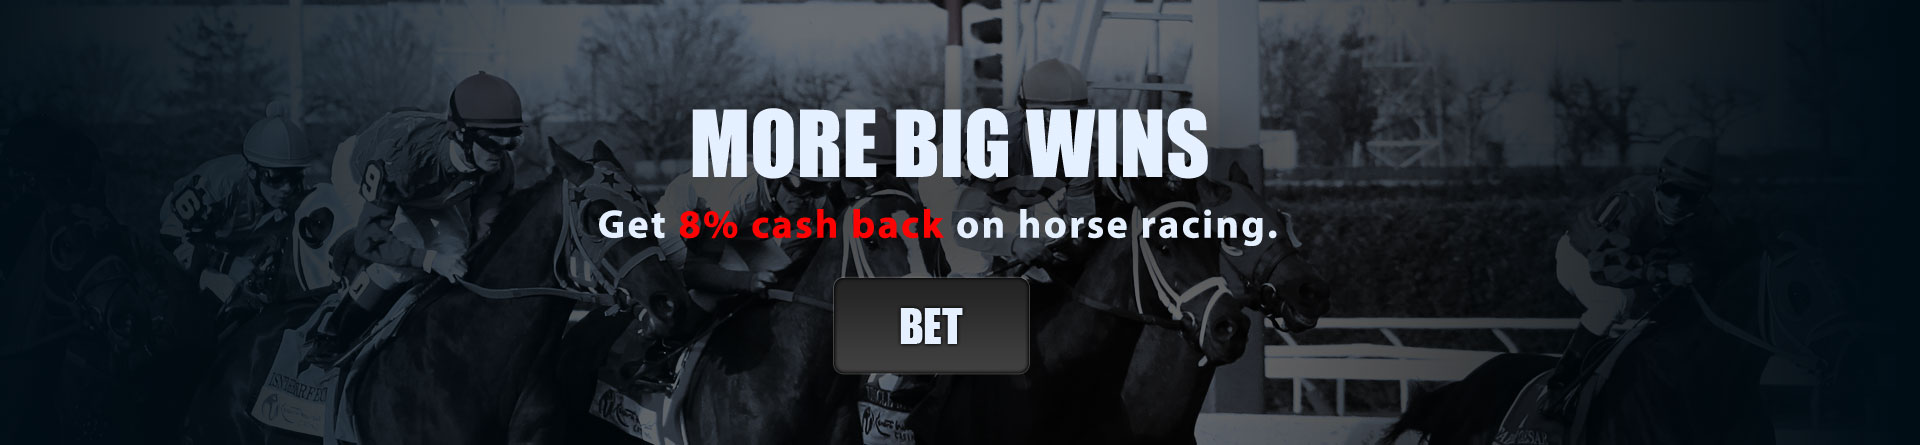 Bet On Horses!